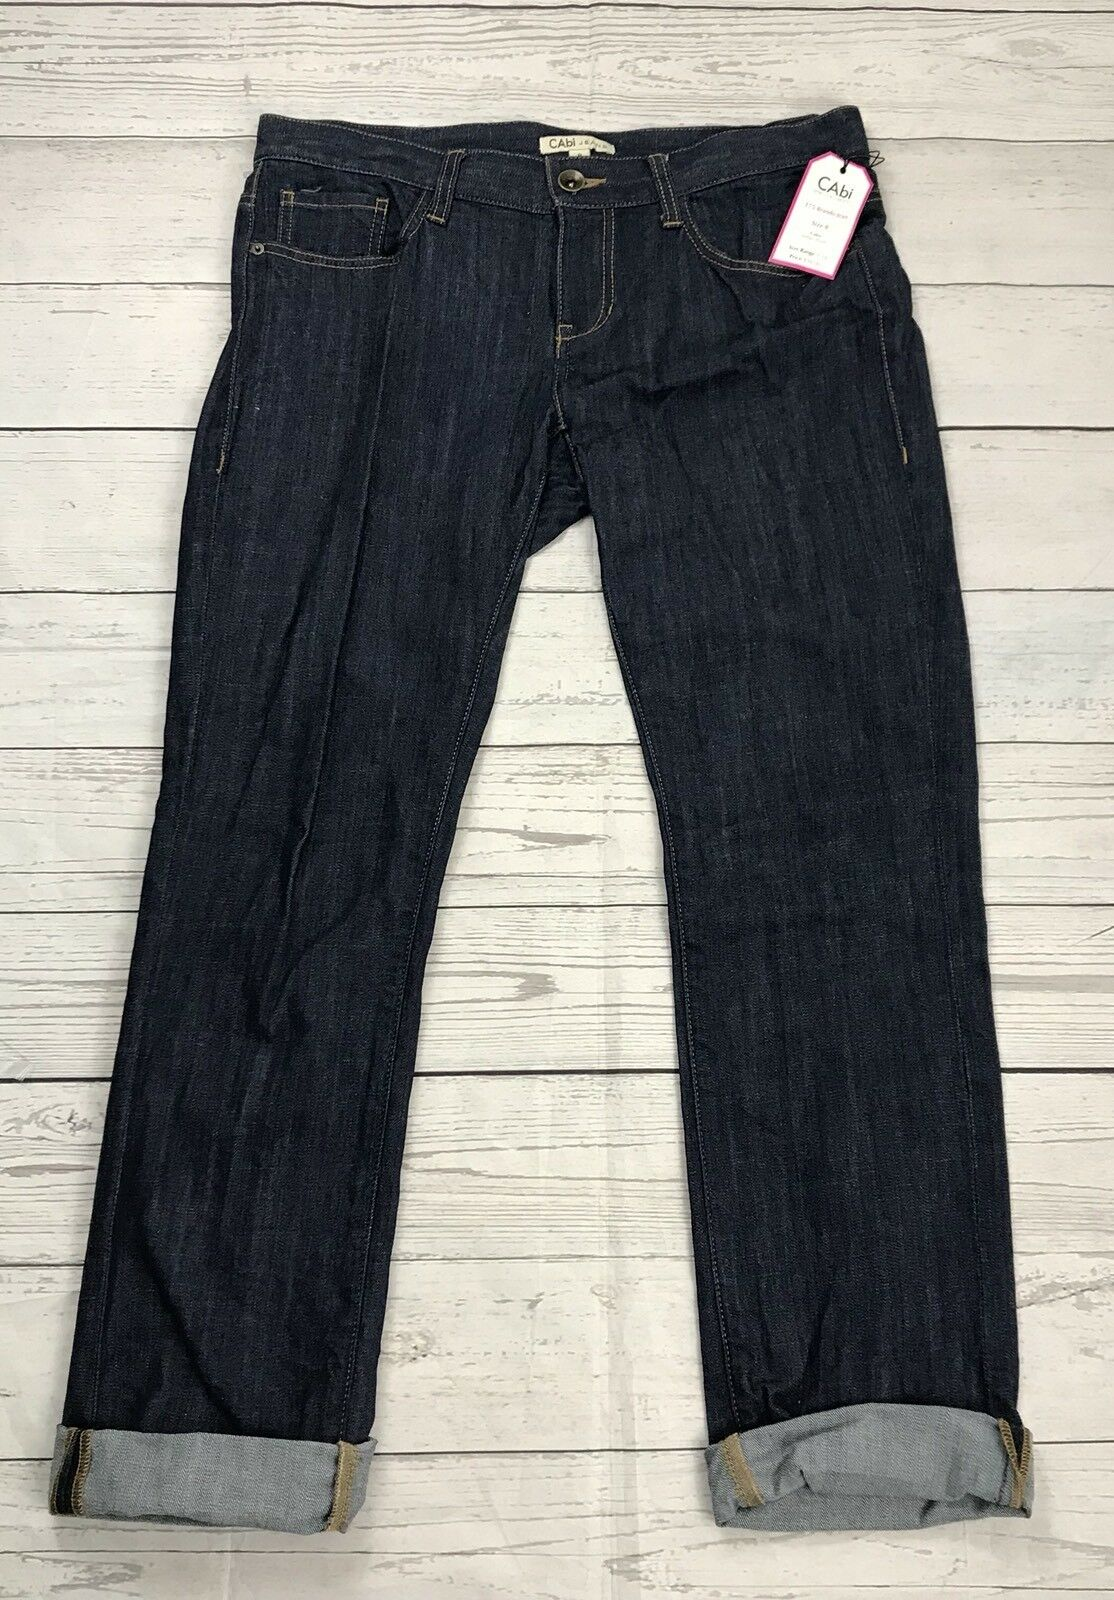 Cabi Women's 175 Brando Jeans Size 8 Regular Indigo Wash